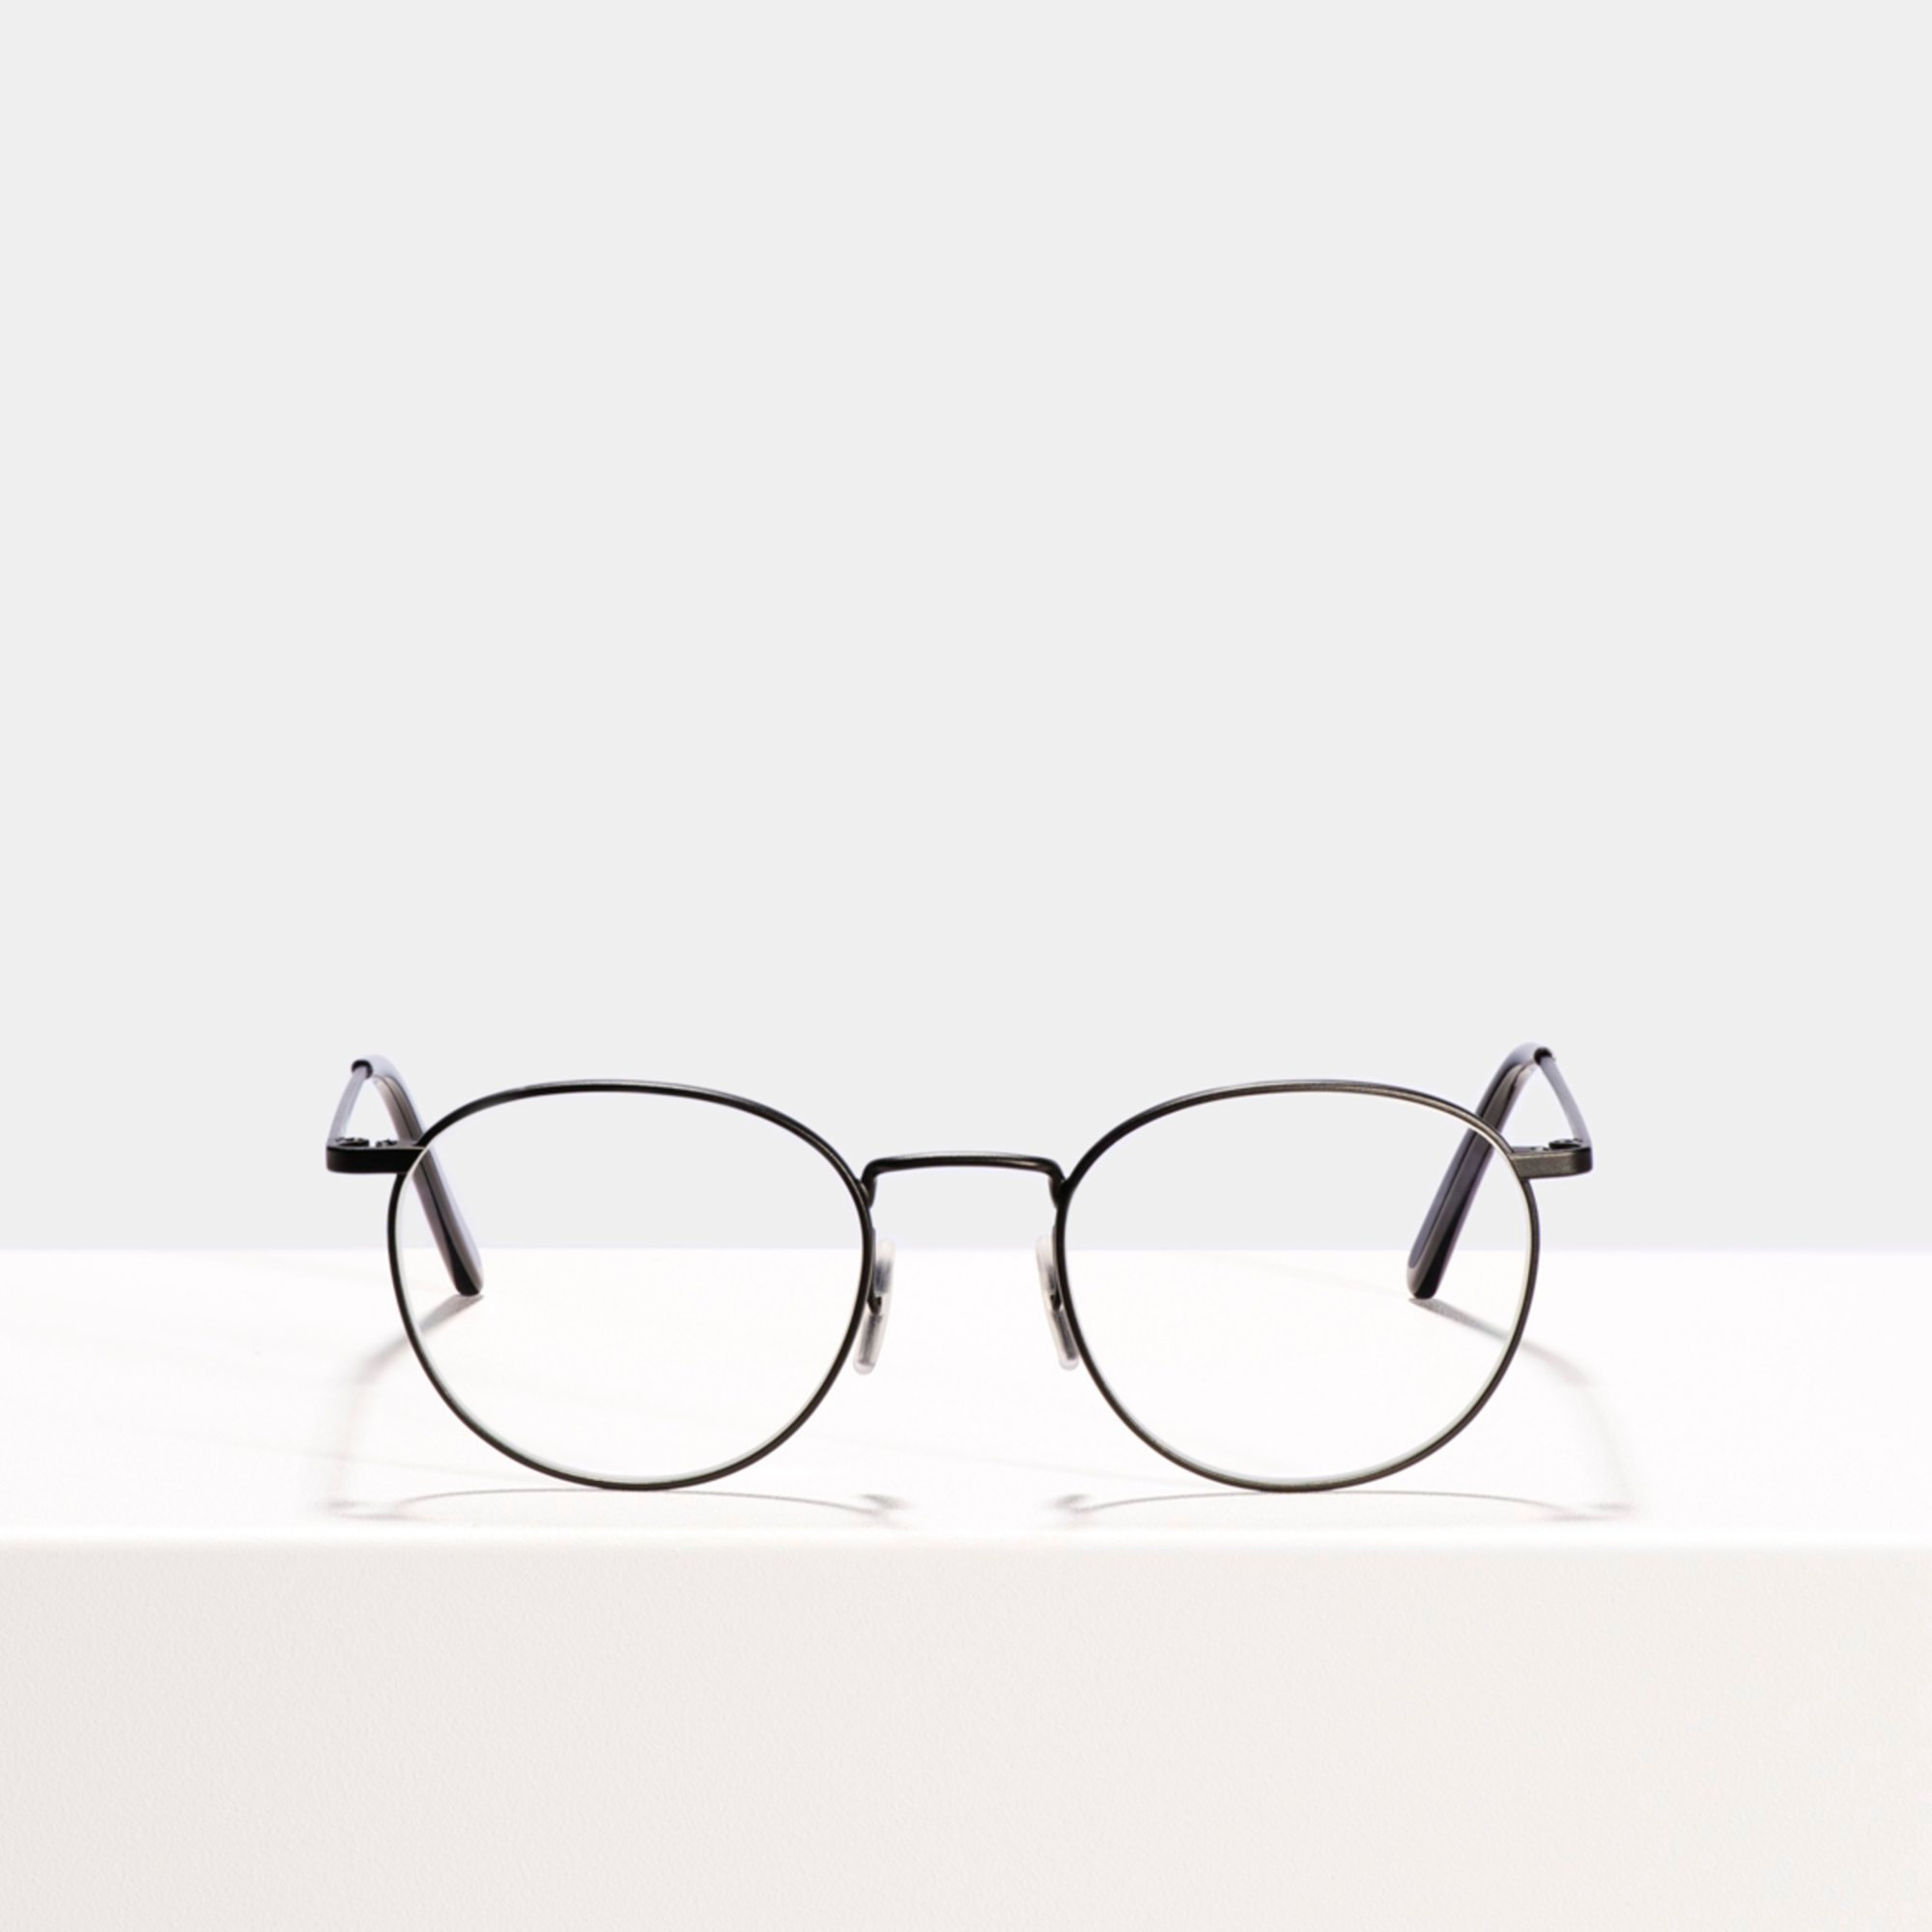 Ace & Tate Glasses | rond metaal in Zwart